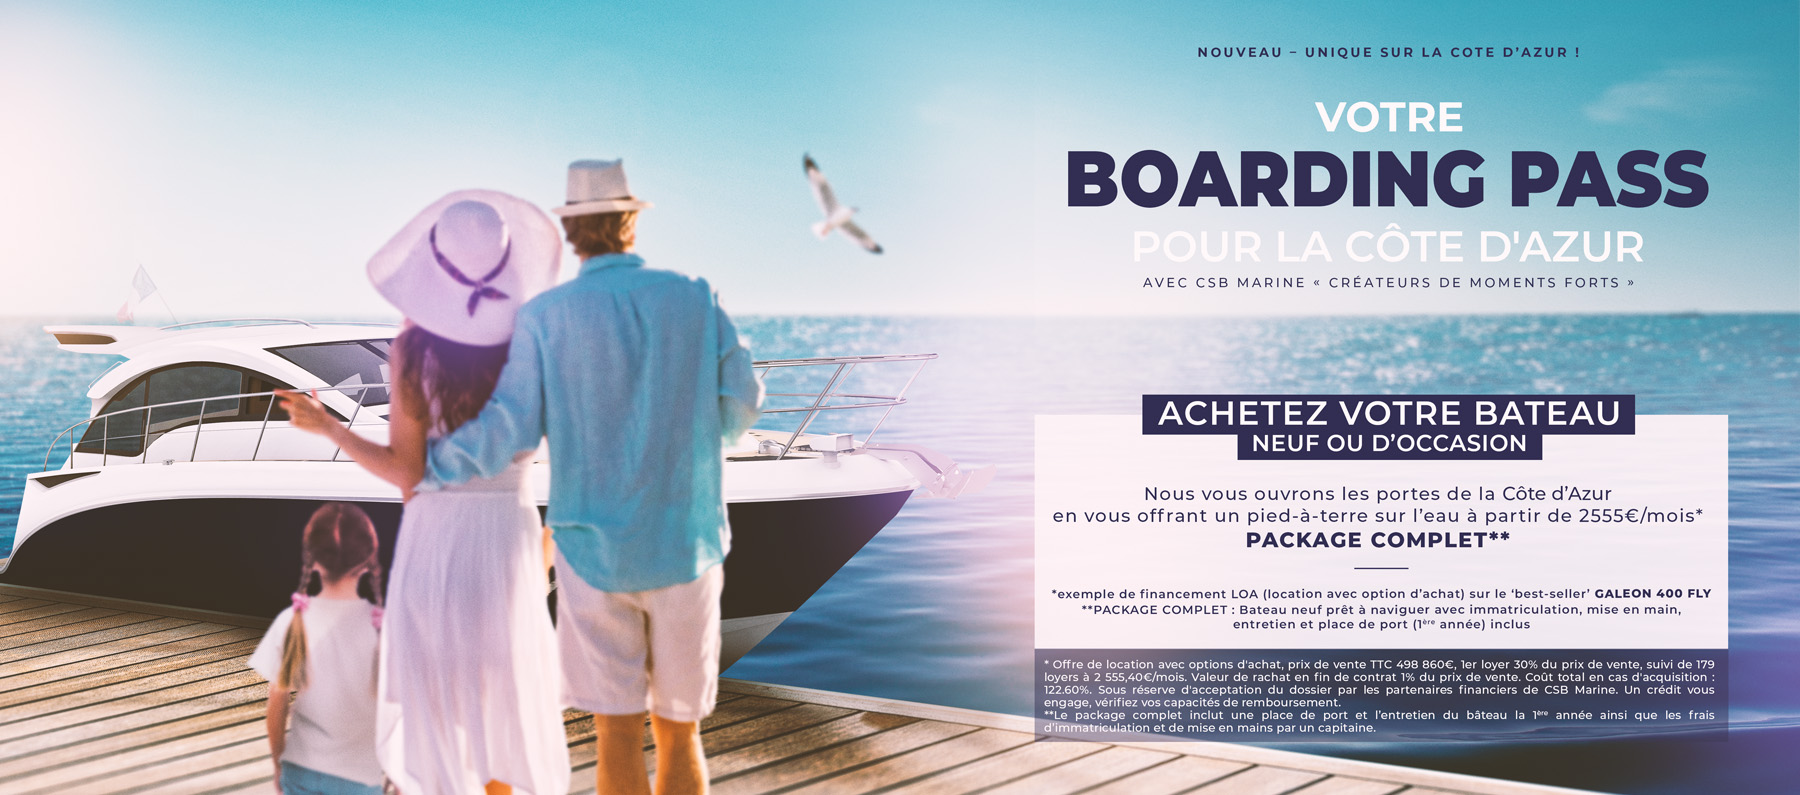 Boarding Pass LOA Galeon 400 FLY